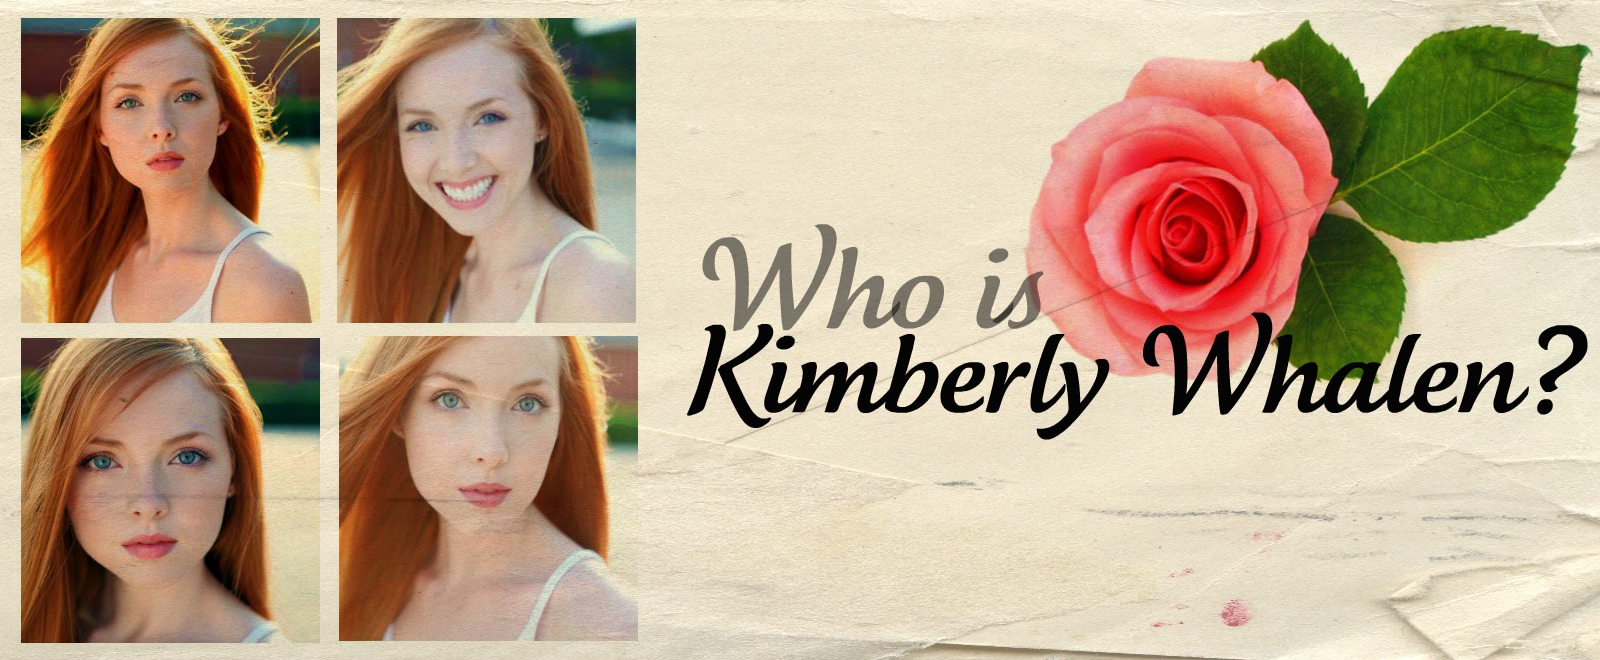 Who is Kimberly Whalen?